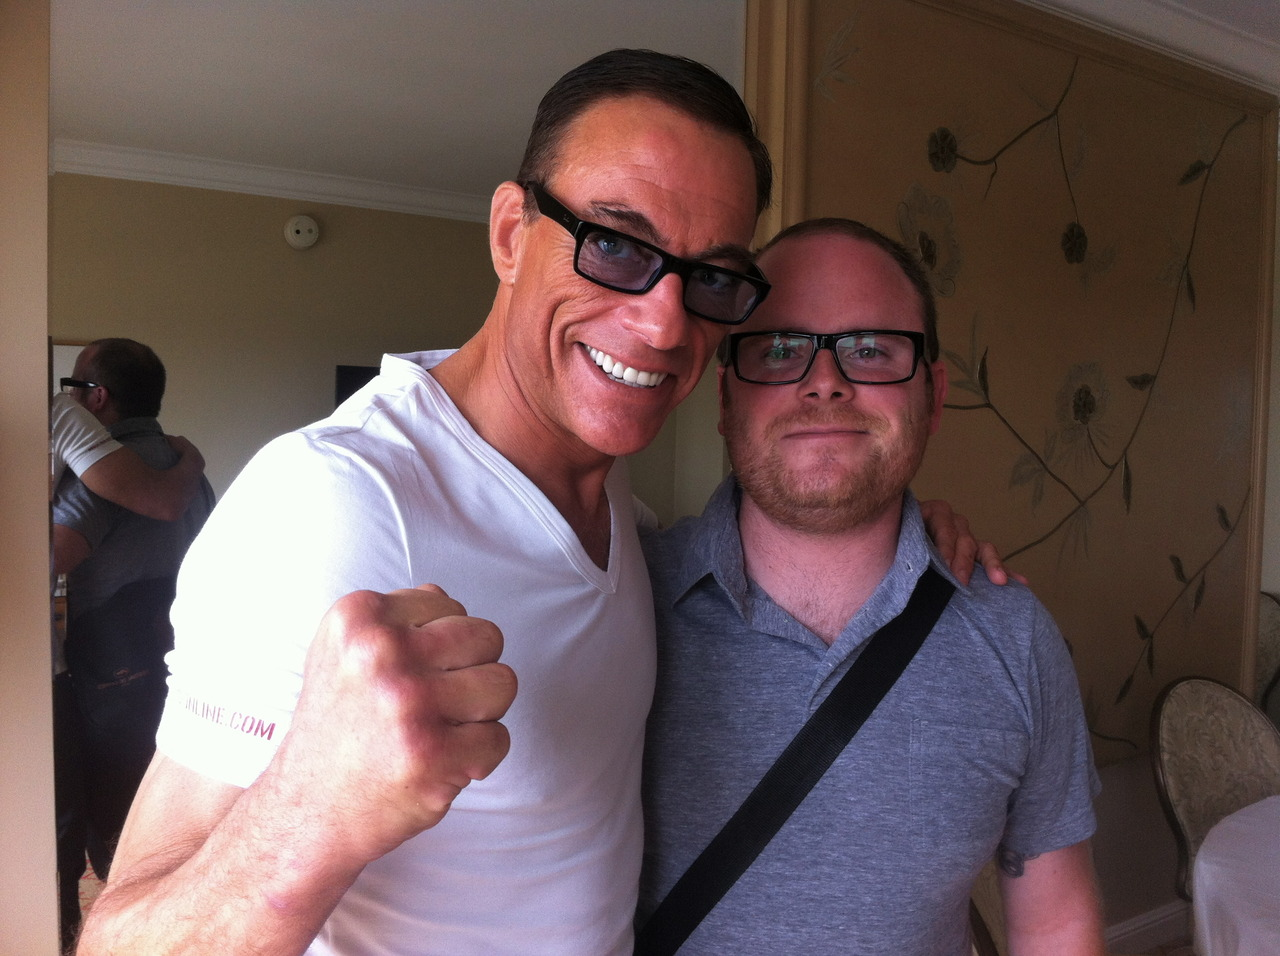 It's not every day that you get to meet and interview your childhood hero. I did just that this weekend. Interview coming soon. - with Jean-Claude Van Damme